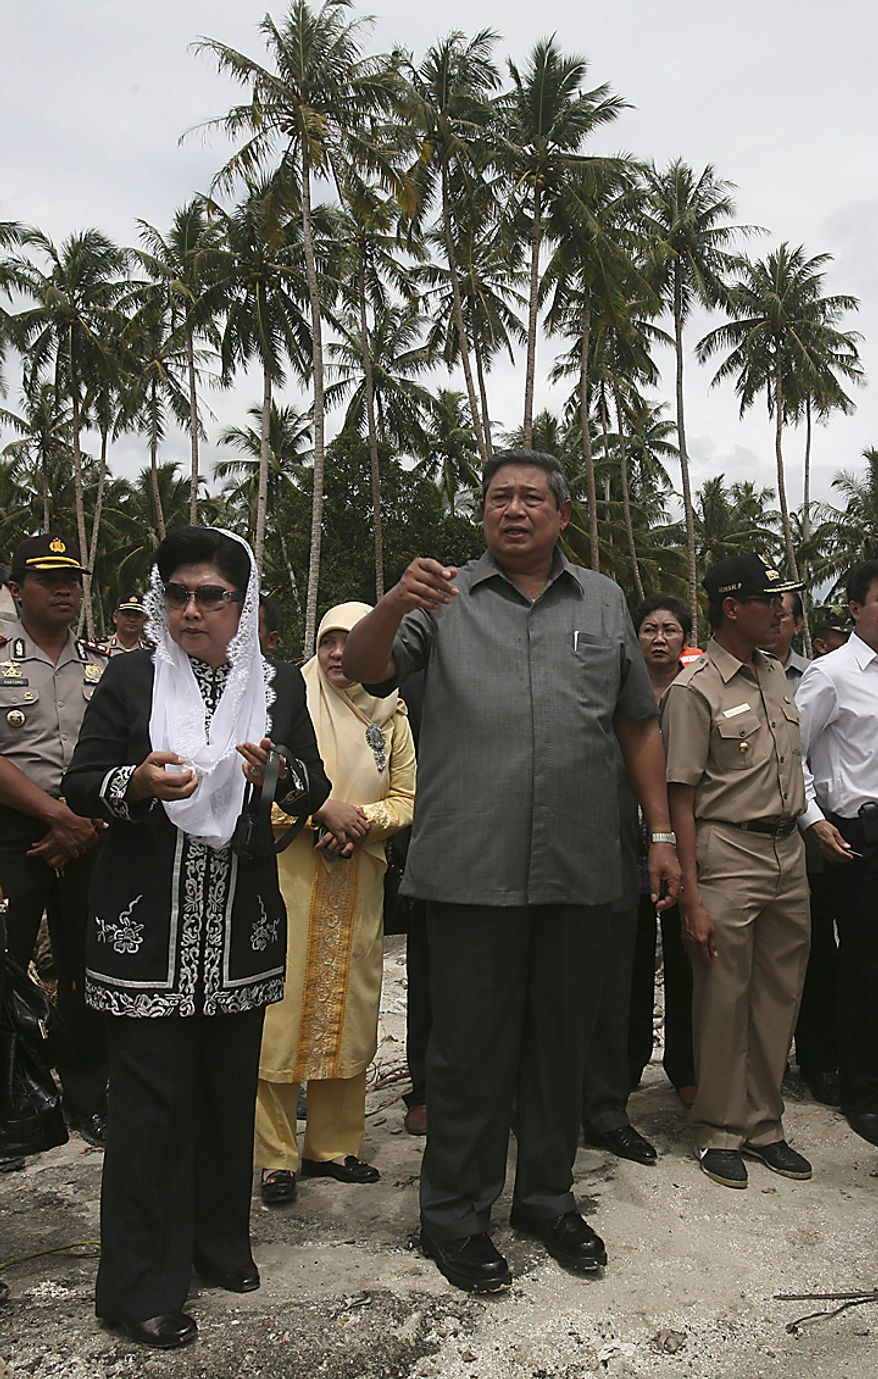 Indonesia President Susilo Bambang Yudhoyono,right, and his wife Kristiani Herawati, left, survey damages on the tsunami-ravaged Pagai island, in Mentawai Islands, Indonesia, Thursday, Oct. 28, 2010.(AP Photo/Achmad Ibrahim)